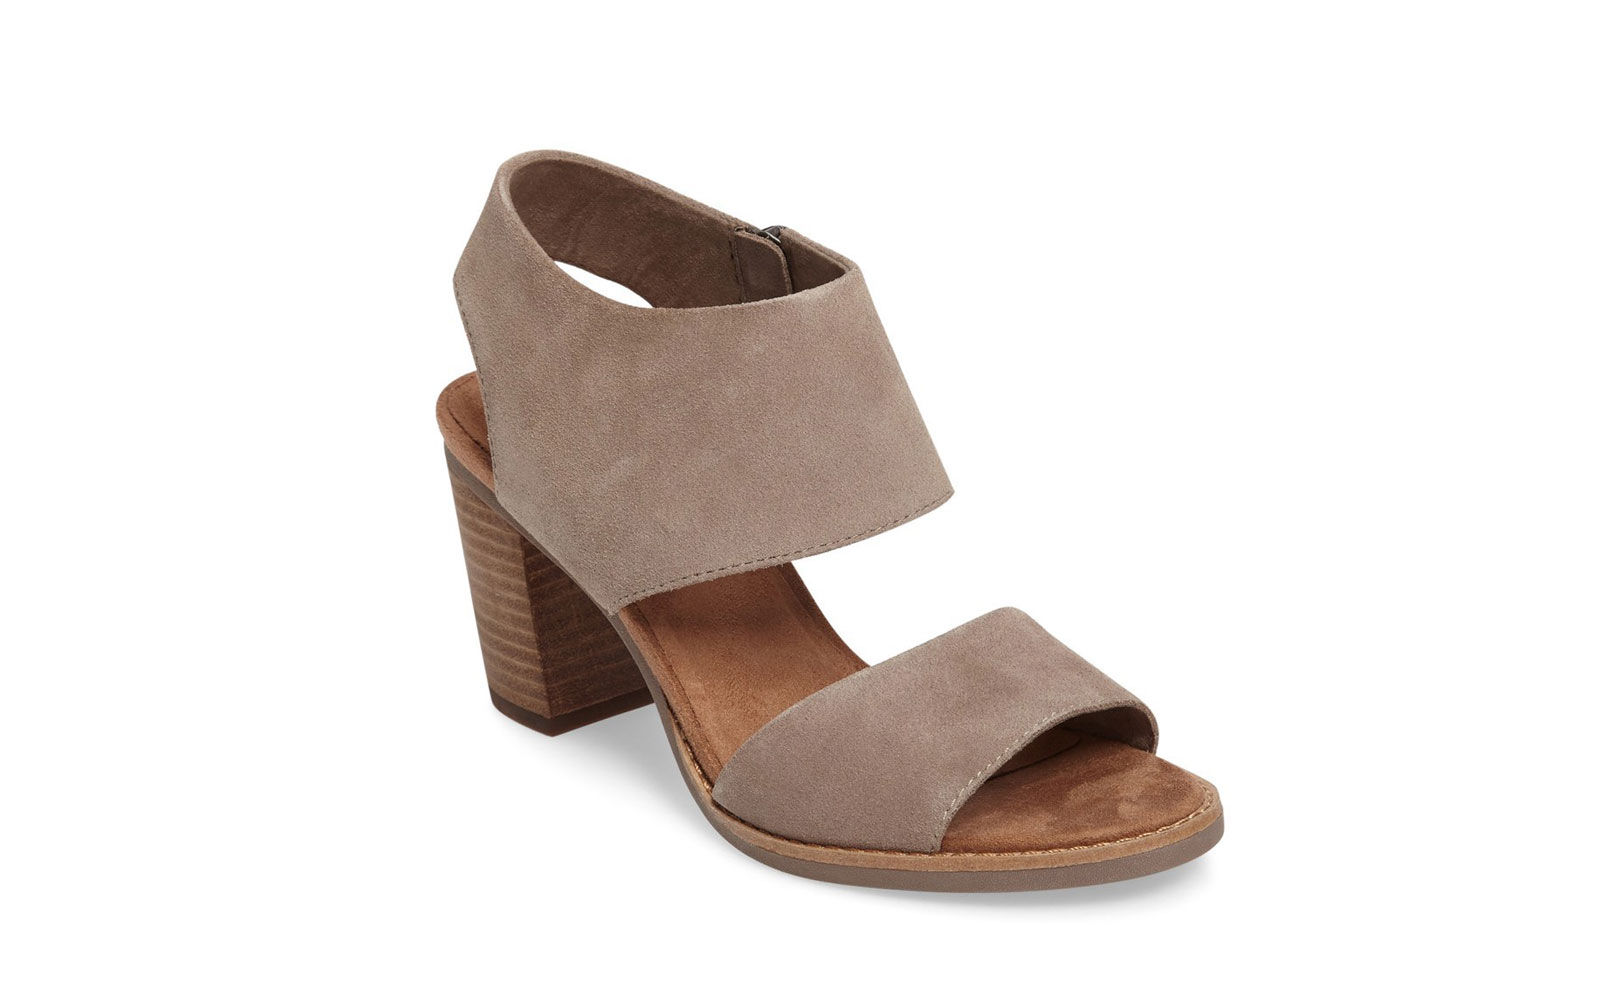 a2411beef51 The Best Heels to Wear While Traveling